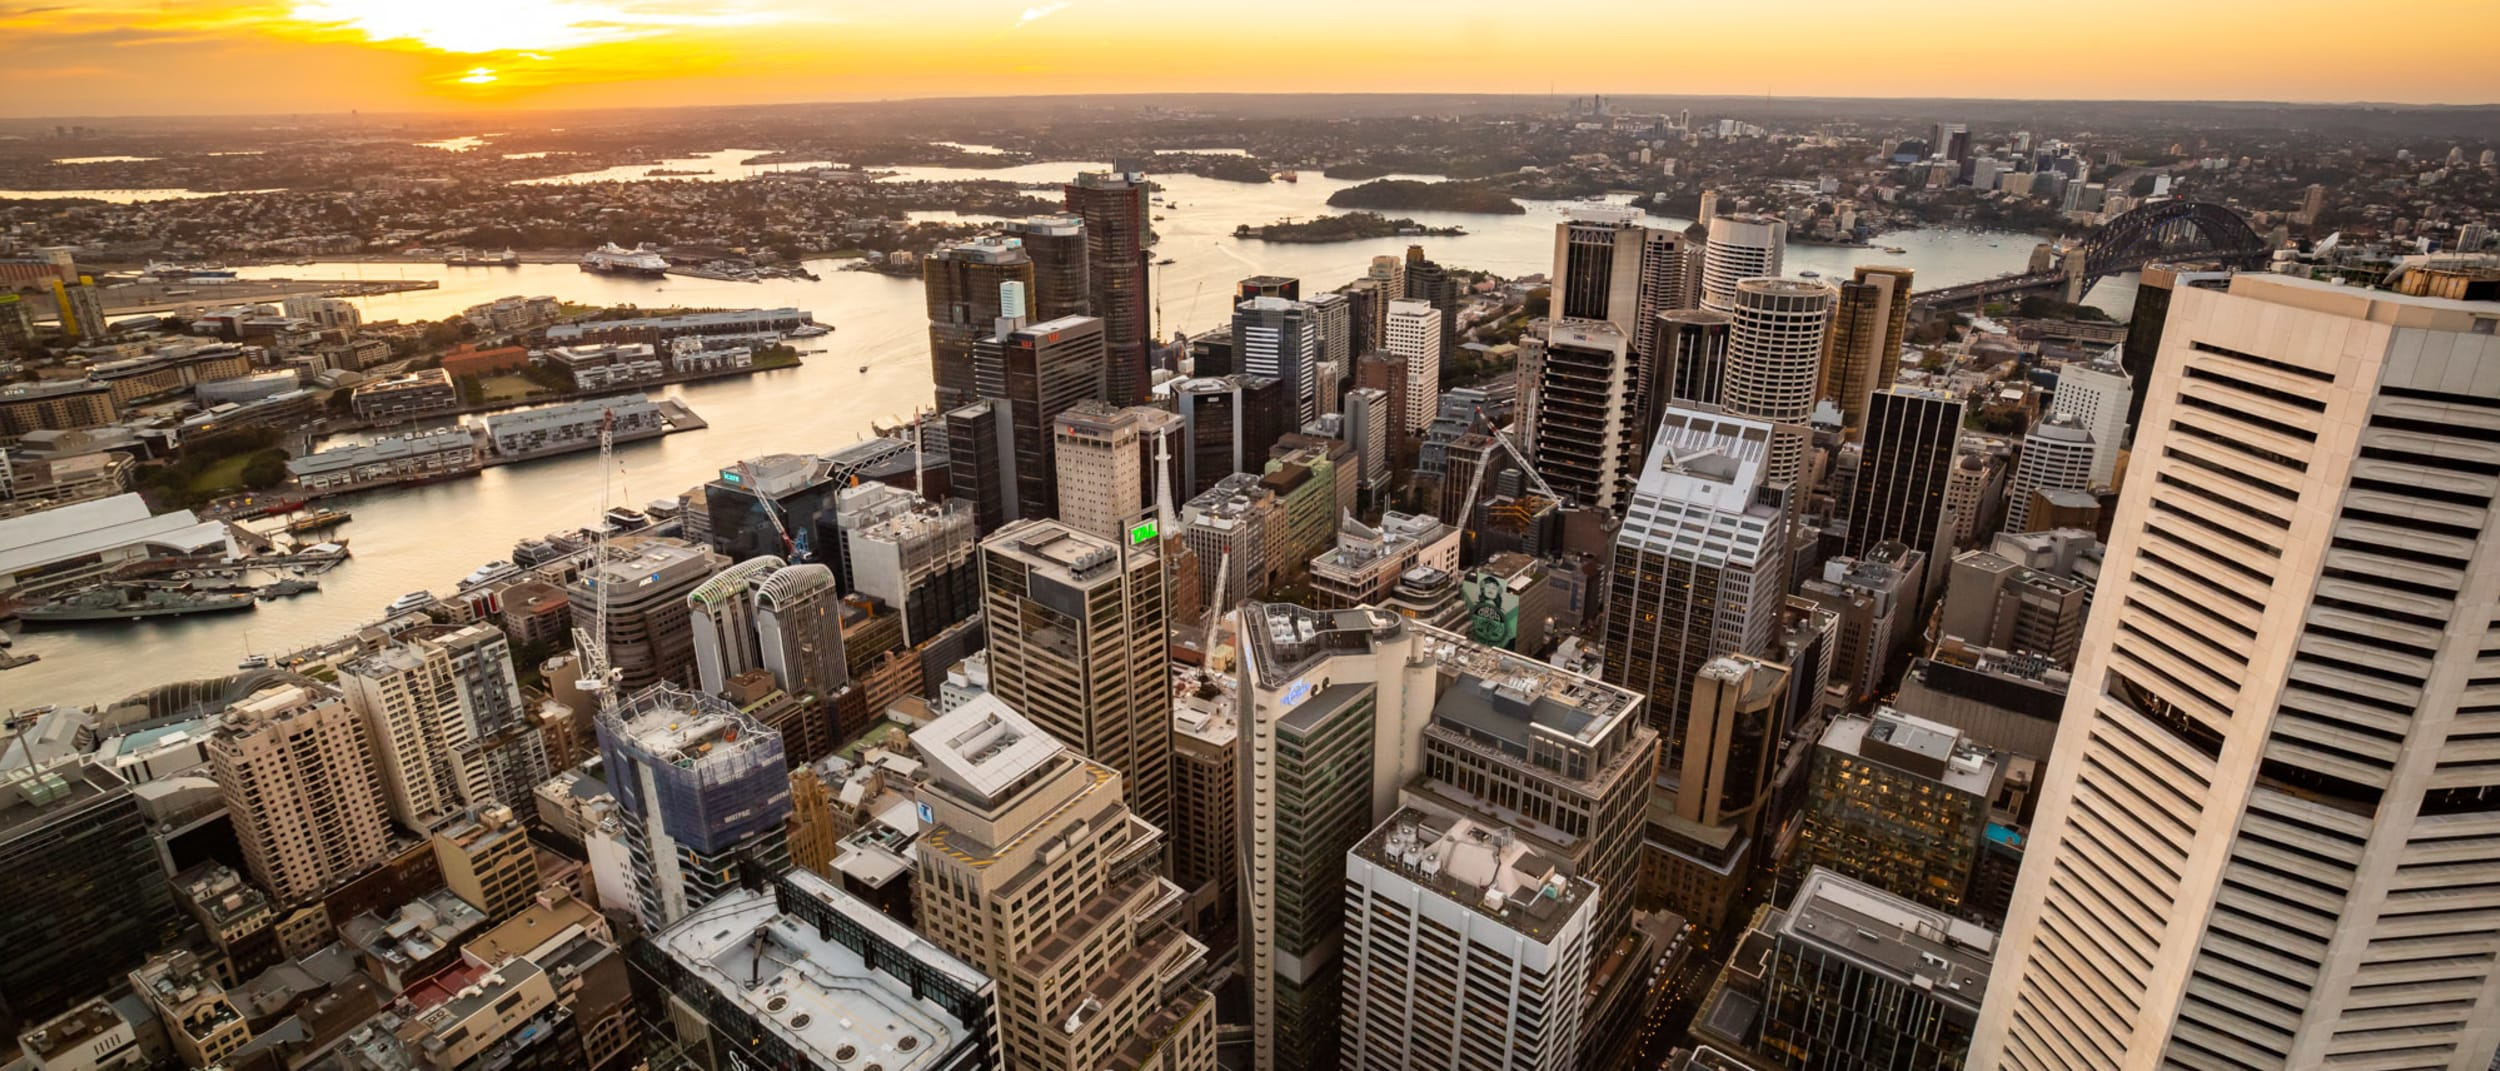 Sydney Tower Eye: 50% off entry to Observation Deck promo code